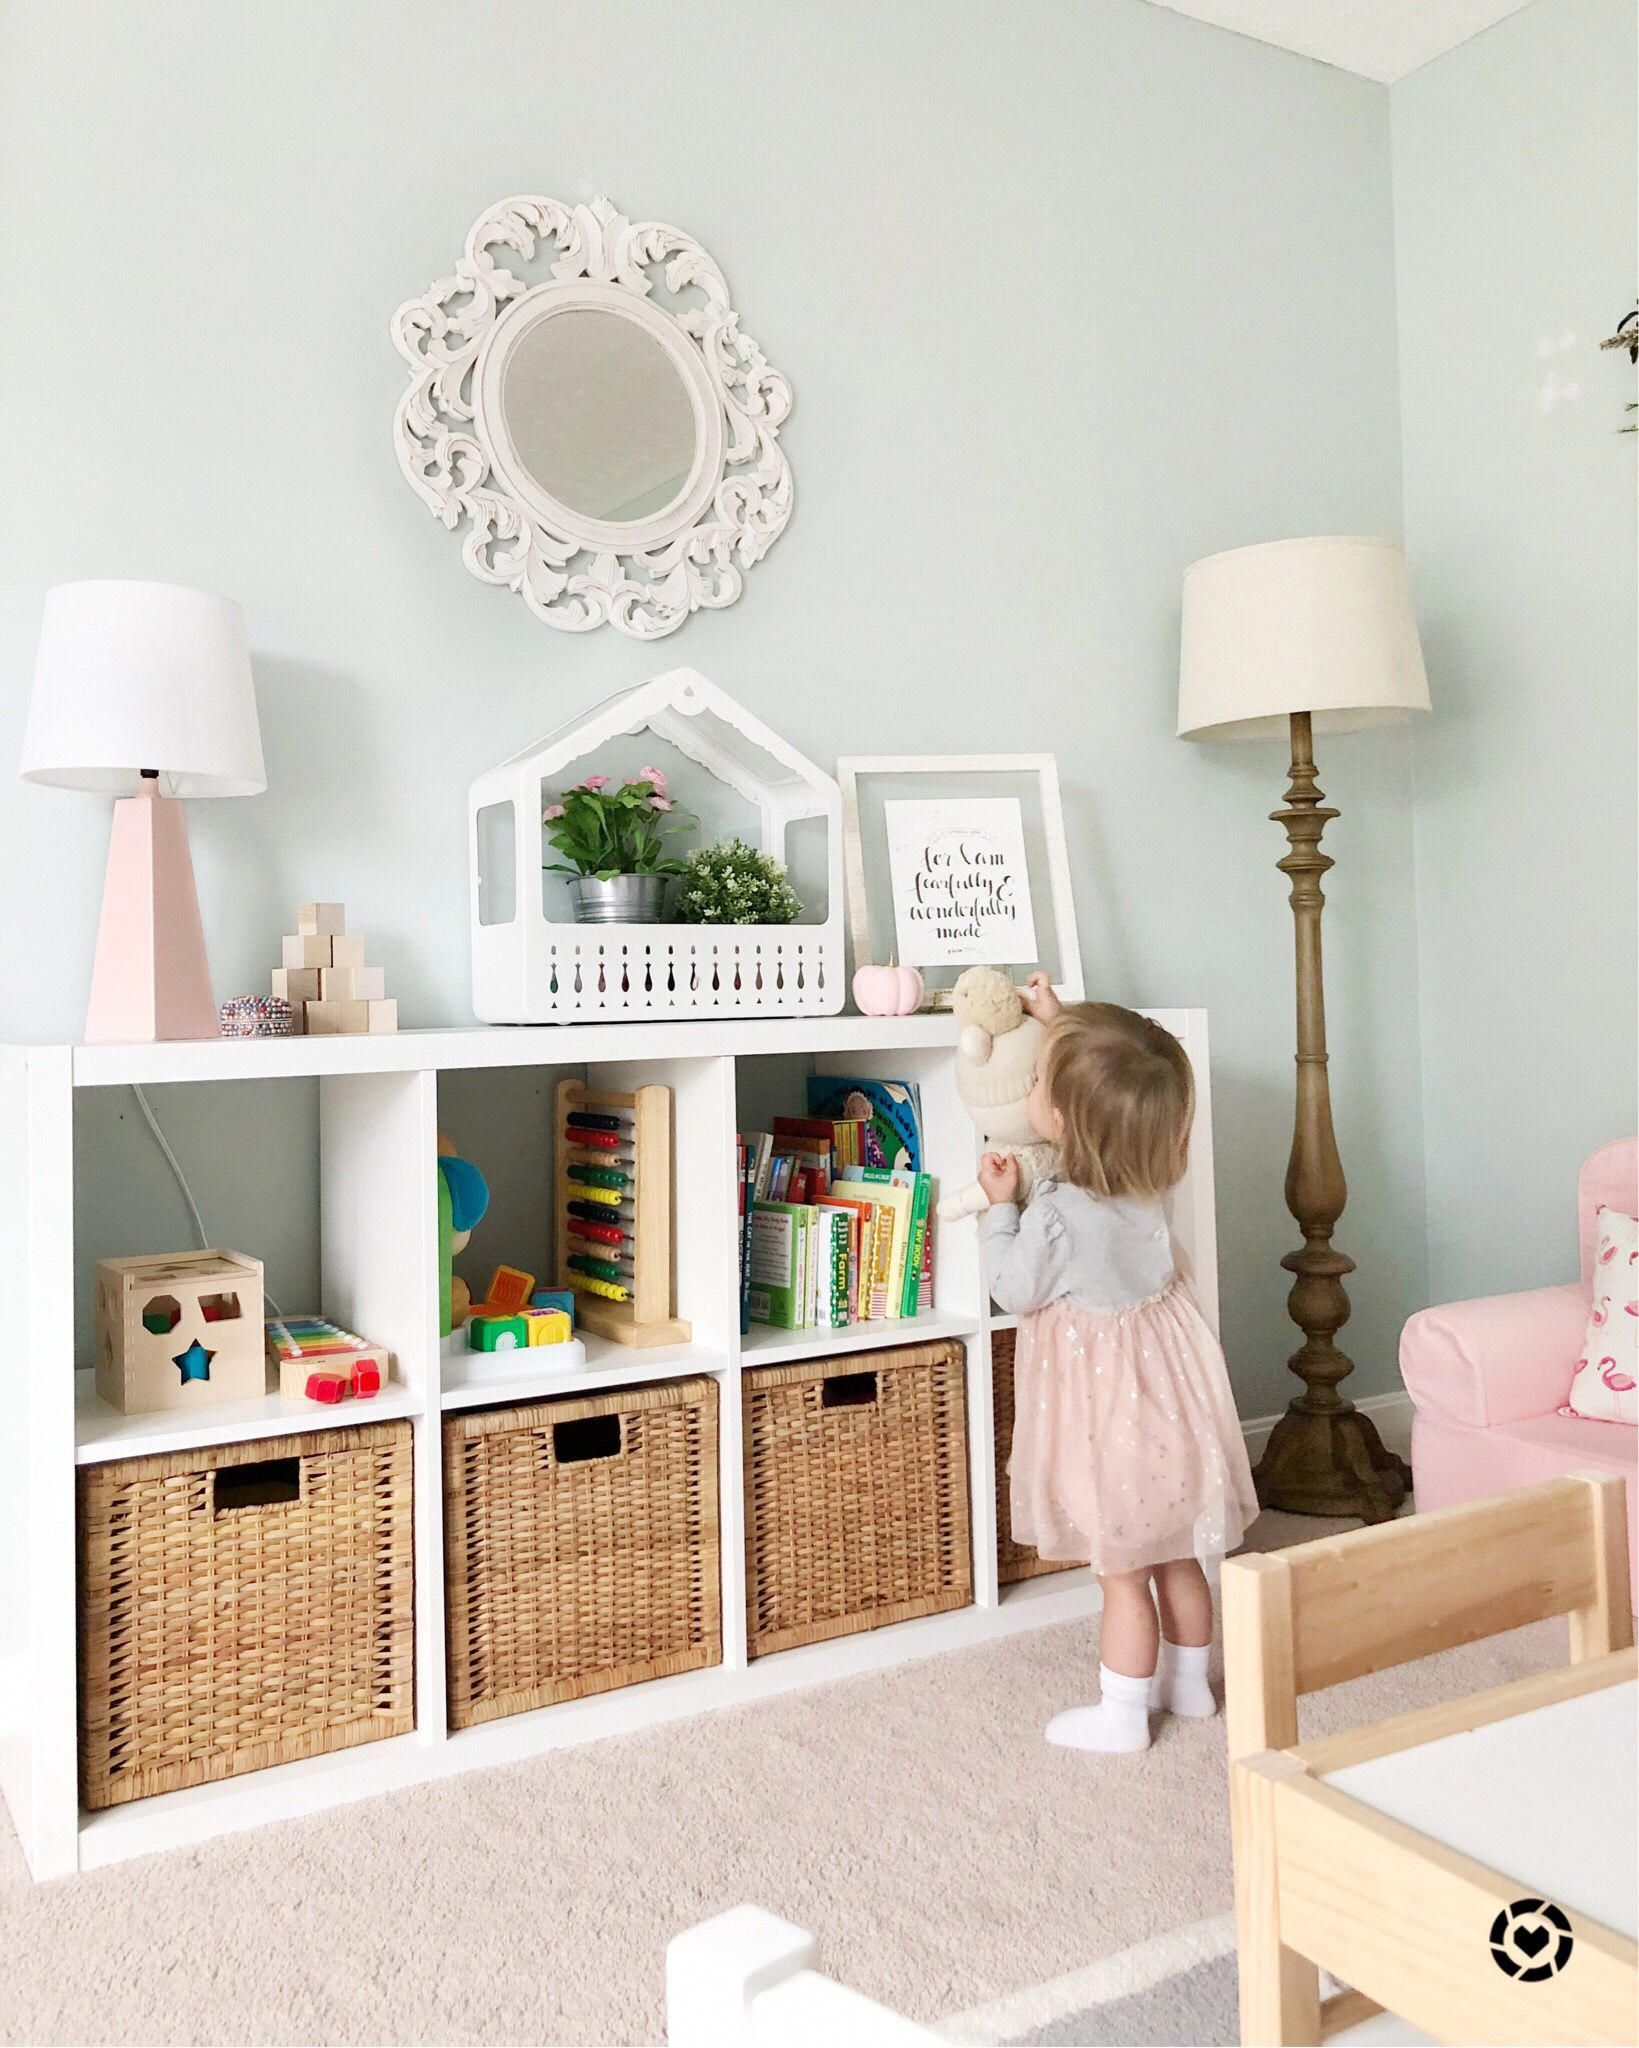 Ikea Kallax With Wicker Bins Sw Copen Blue Paint Pops Of Pinks And Feminine Playroom Ikeabedroomideas Kallax Kids Room Kid Room Decor Kids Bedroom